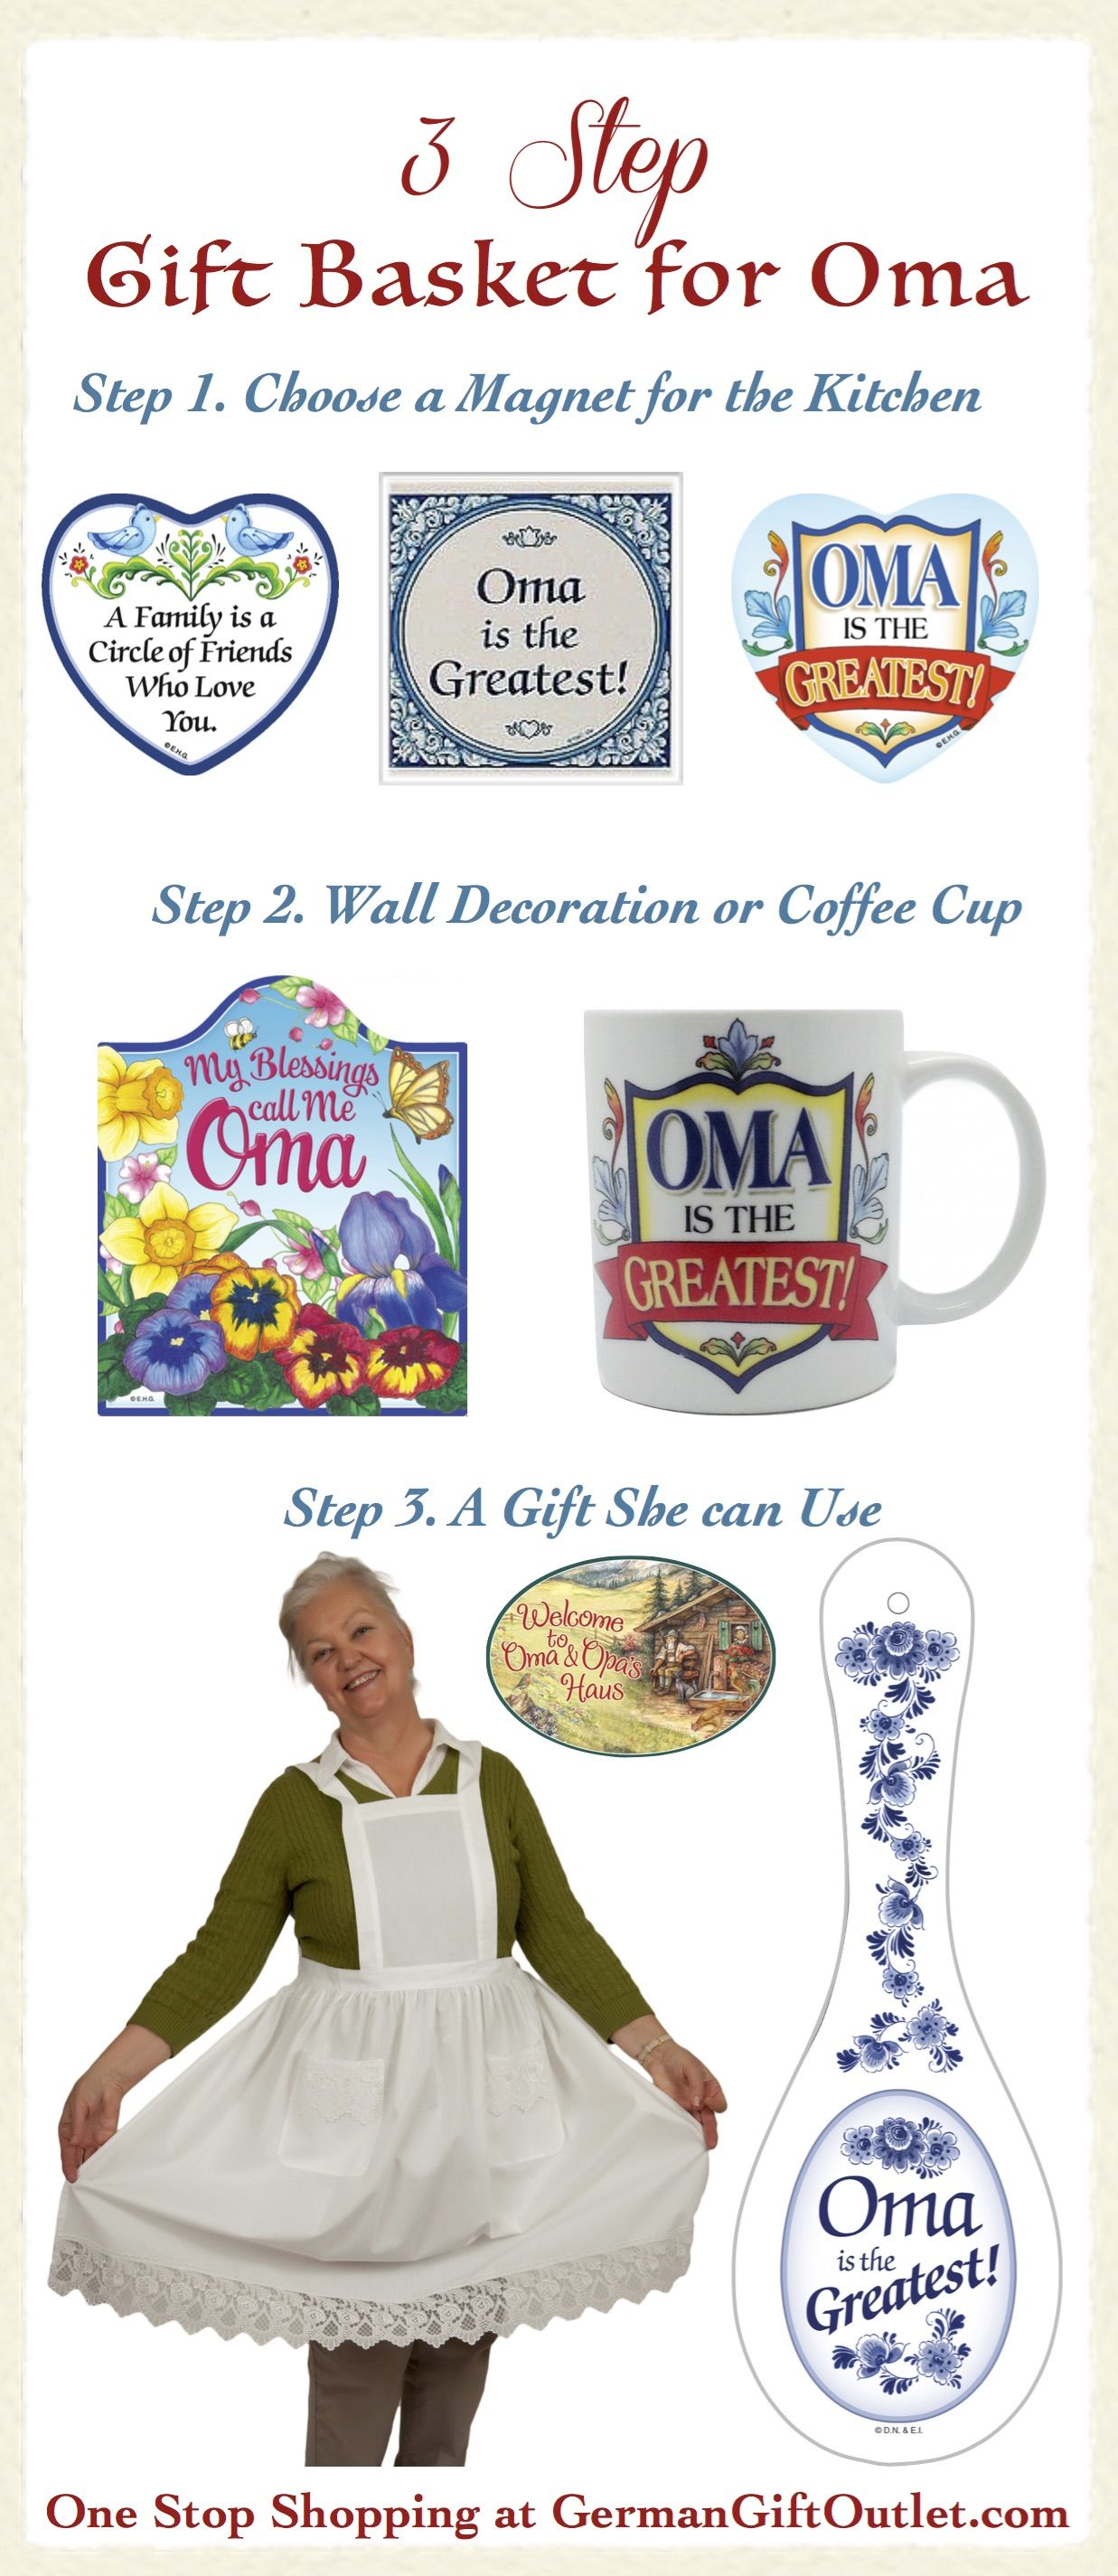 German Wedding Gift Ideas: 3 Step Gift Basket For Oma. DIY Gift. A Gift For Grandma